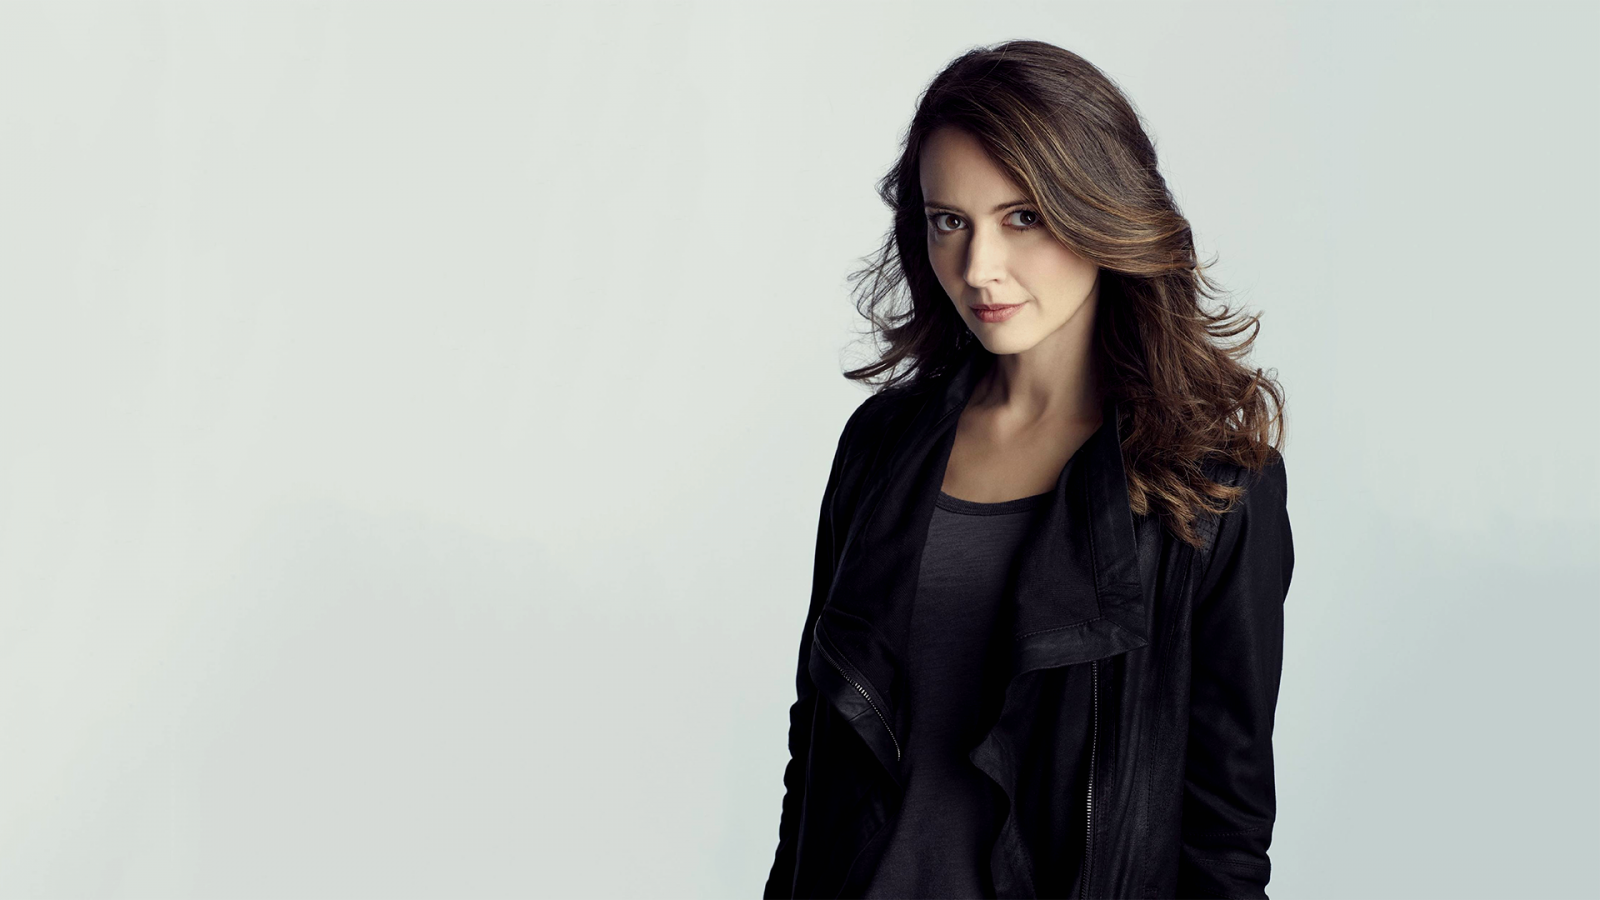 Amy Acker born December 5, 1976 (age 41) Amy Acker born December 5, 1976 (age 41) new picture